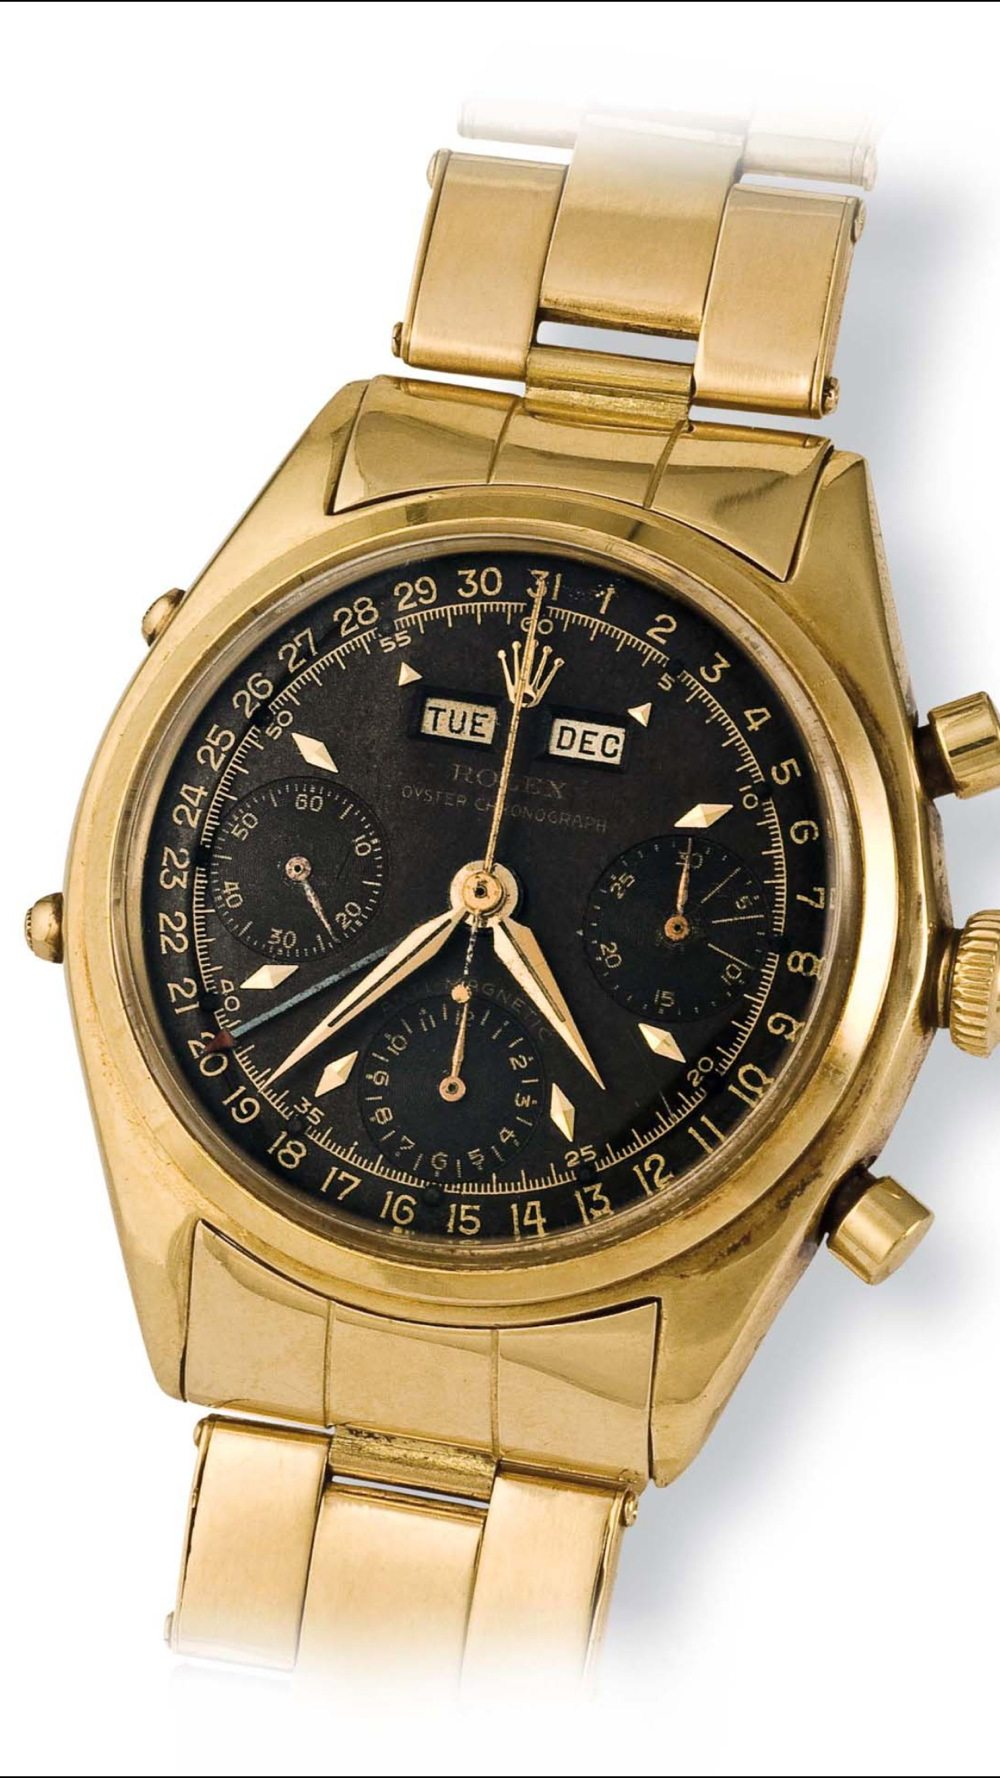 RPR_JG_4767_rolex_killy.yellowPNG